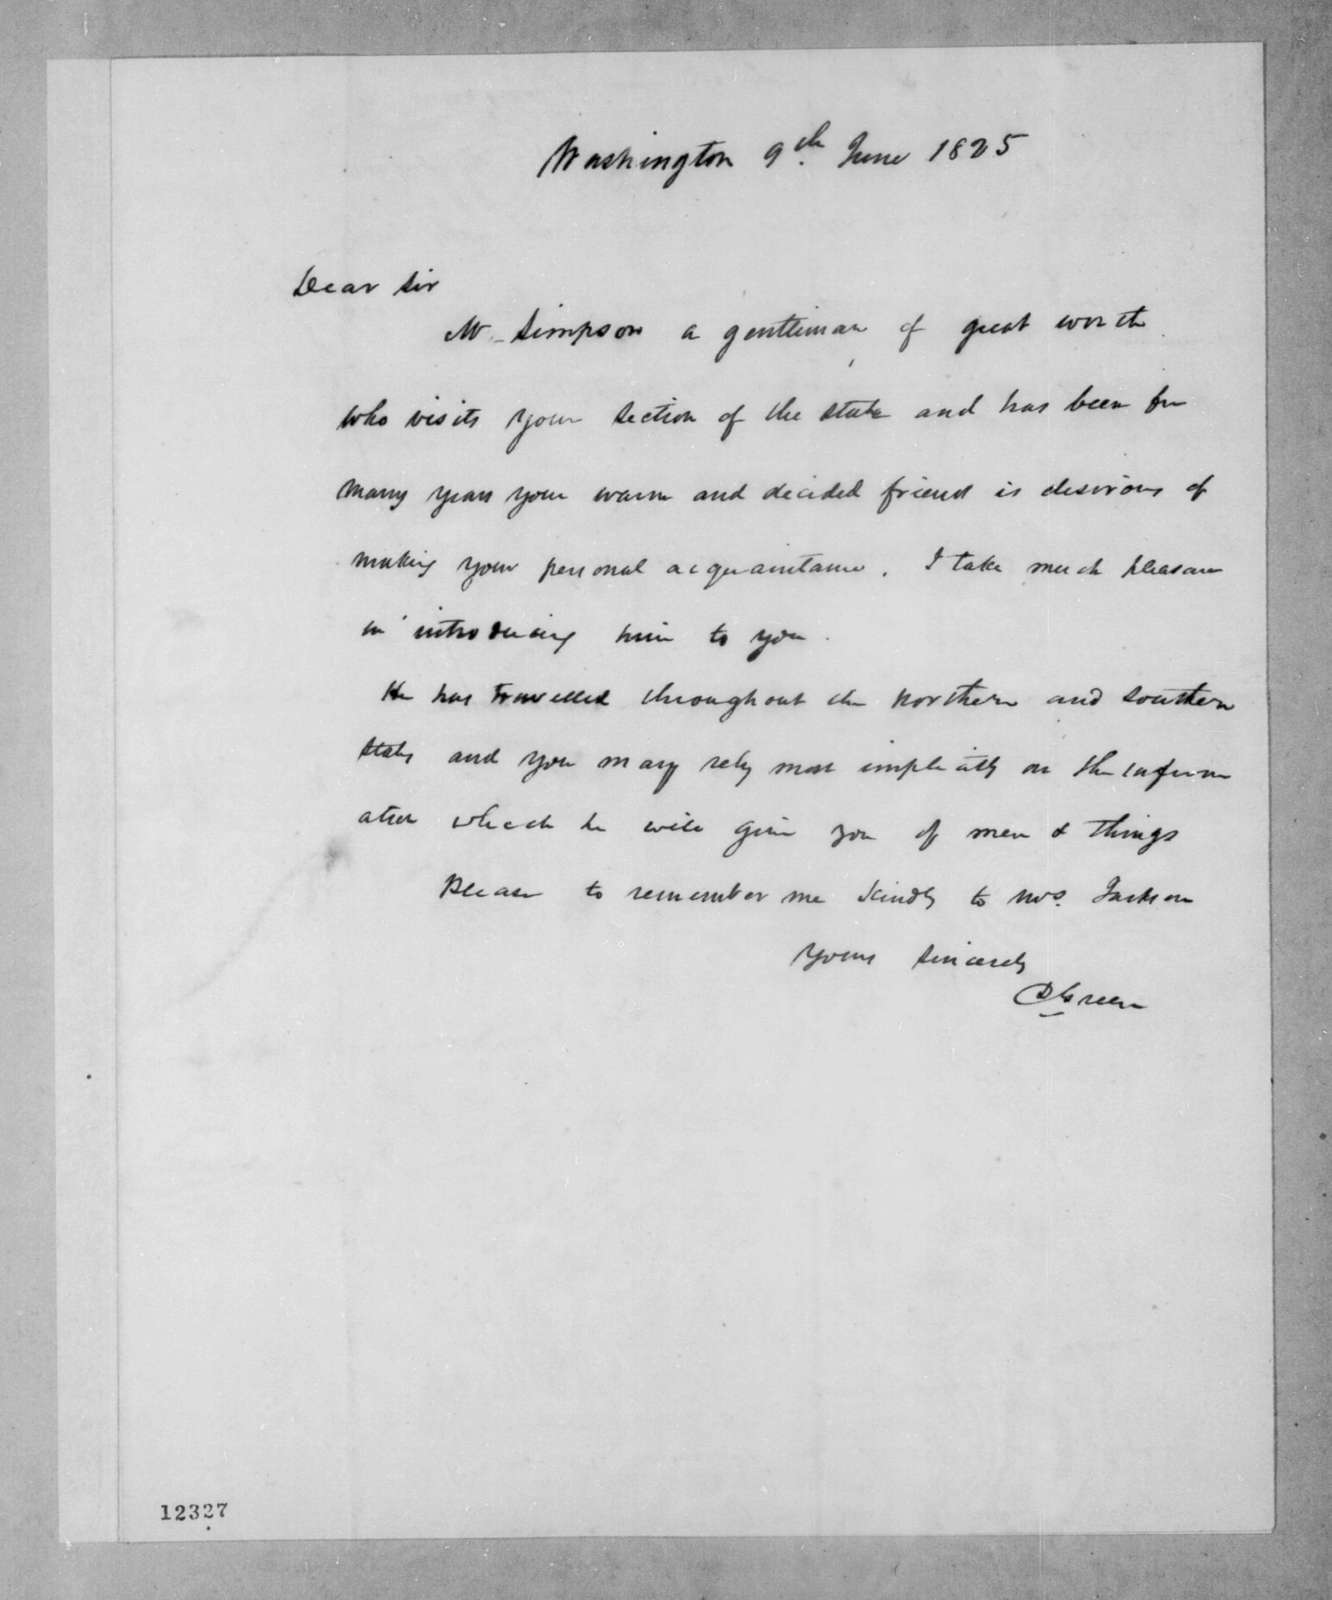 D. Green to Andrew Jackson, June 9, 1825